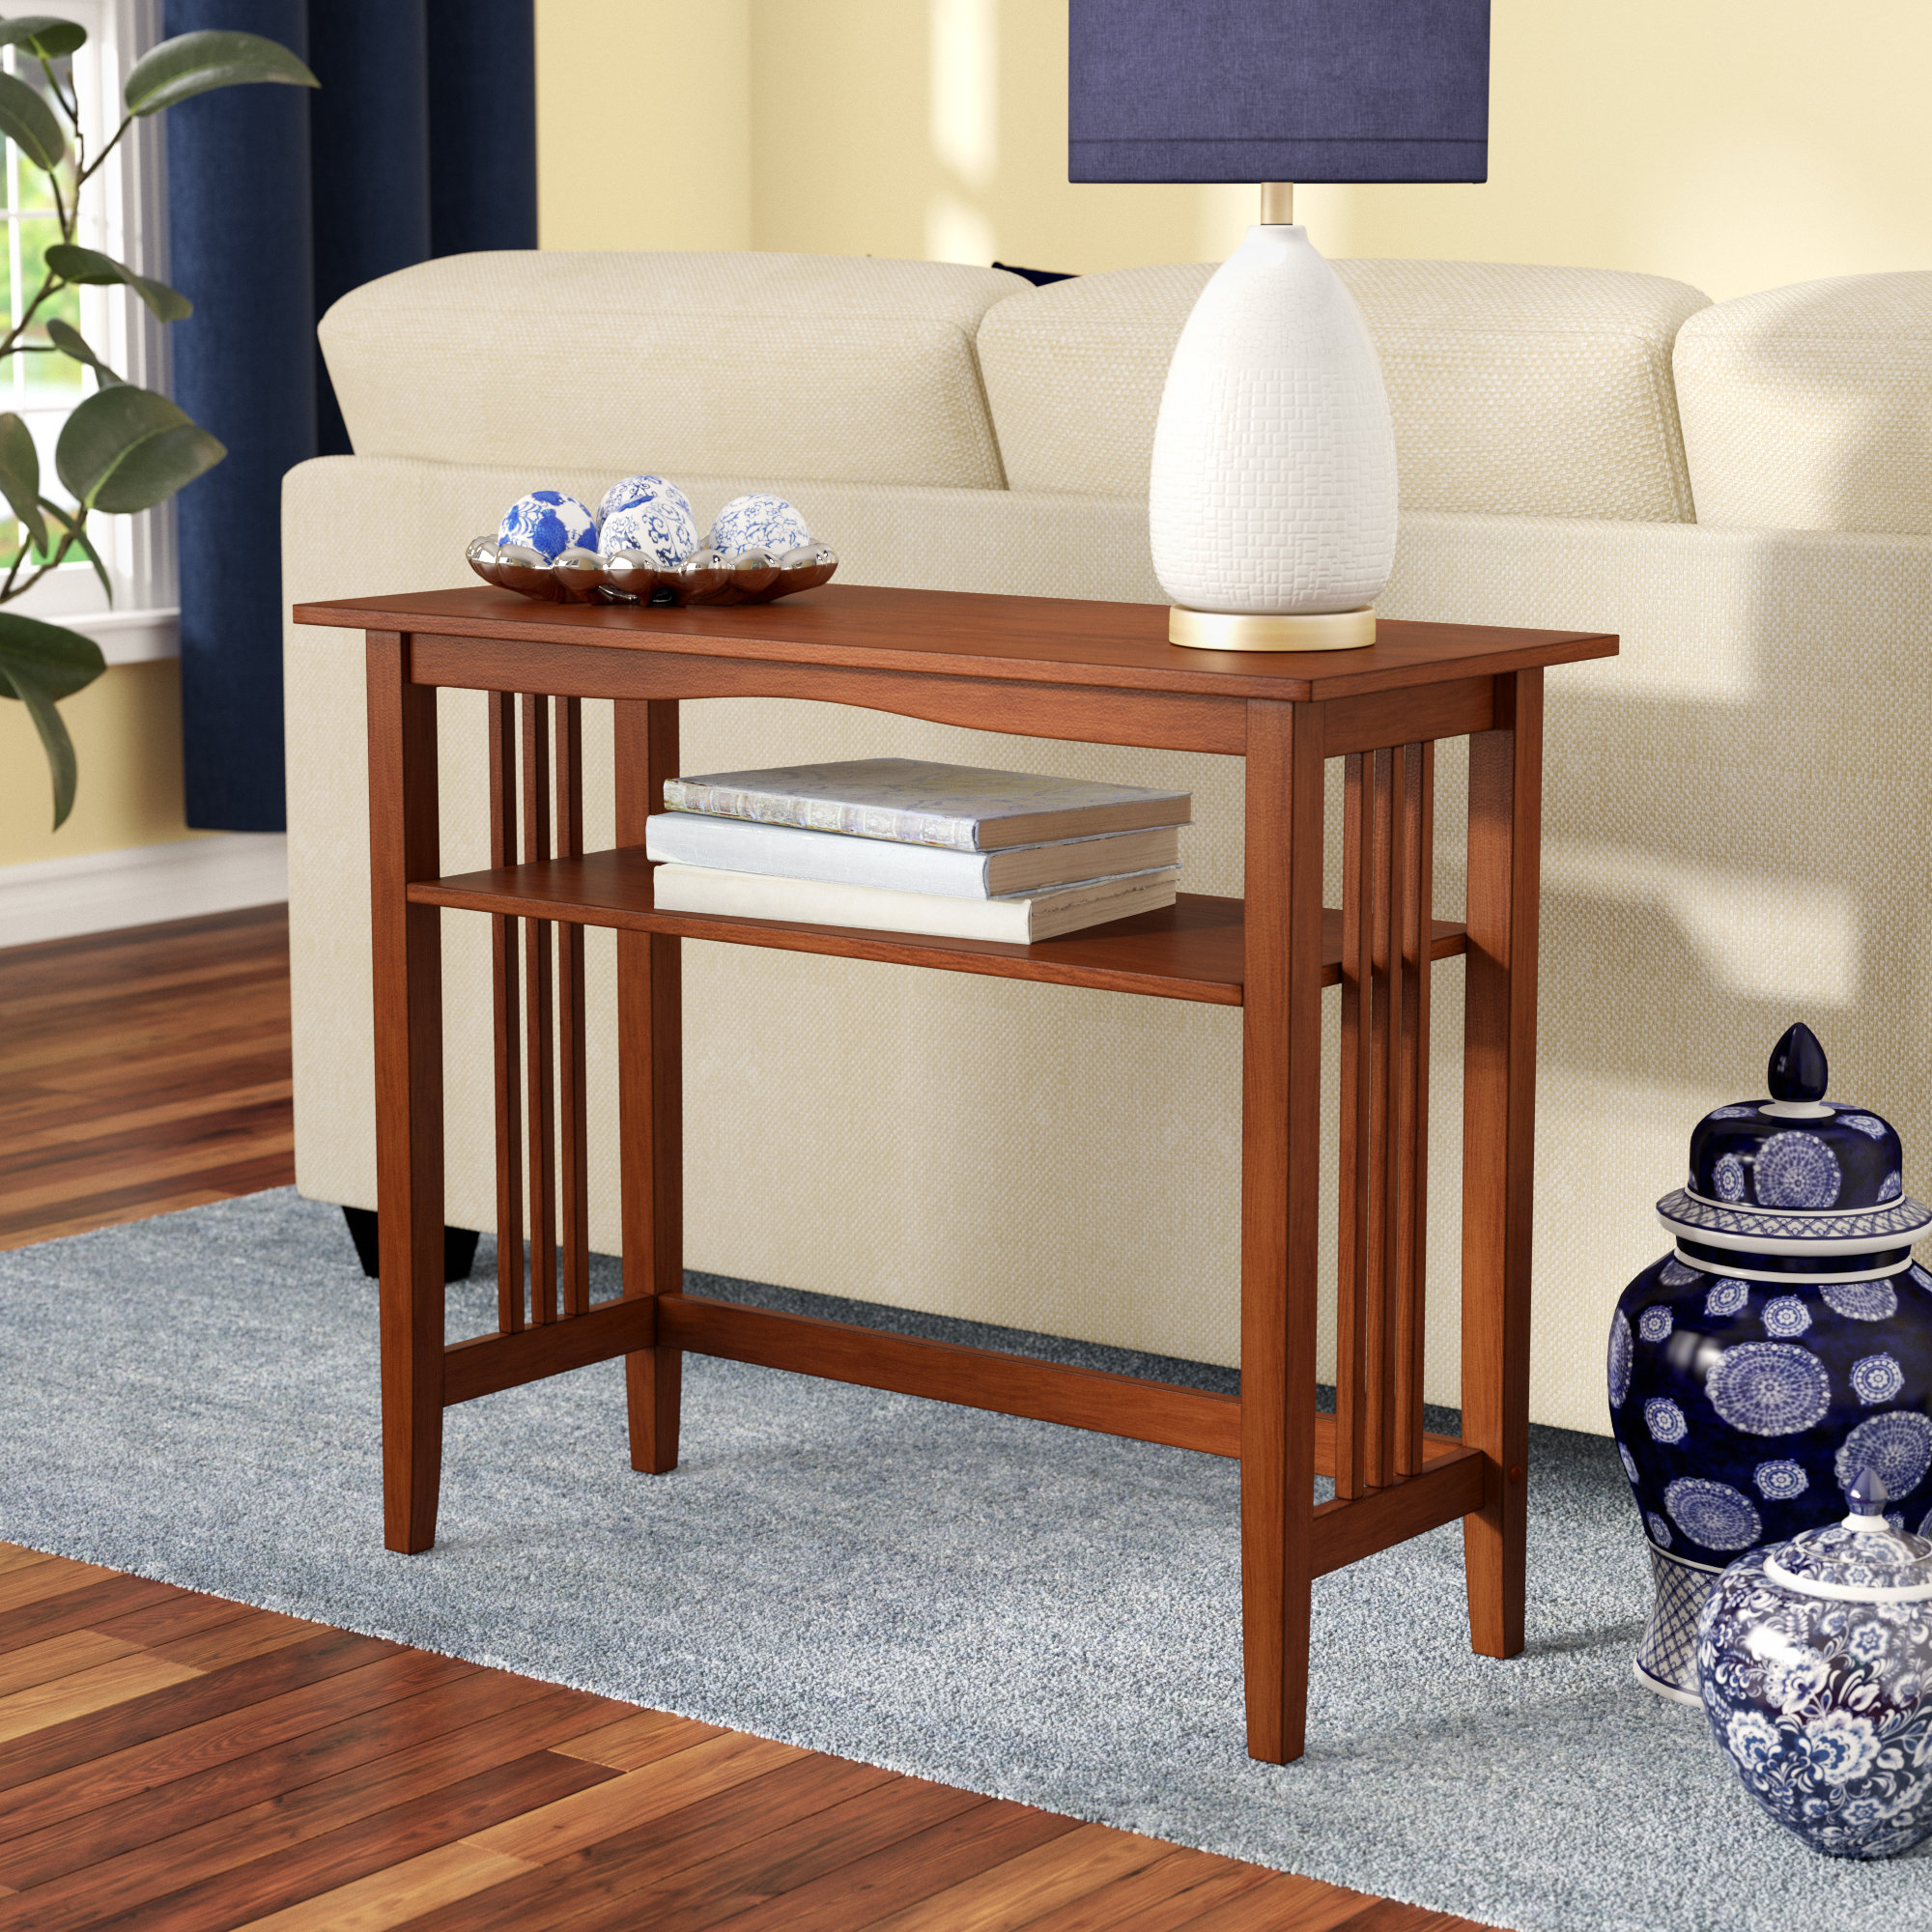 Small Corner Console Table | Wayfair Regarding Layered Wood Small Square Console Tables (View 14 of 20)